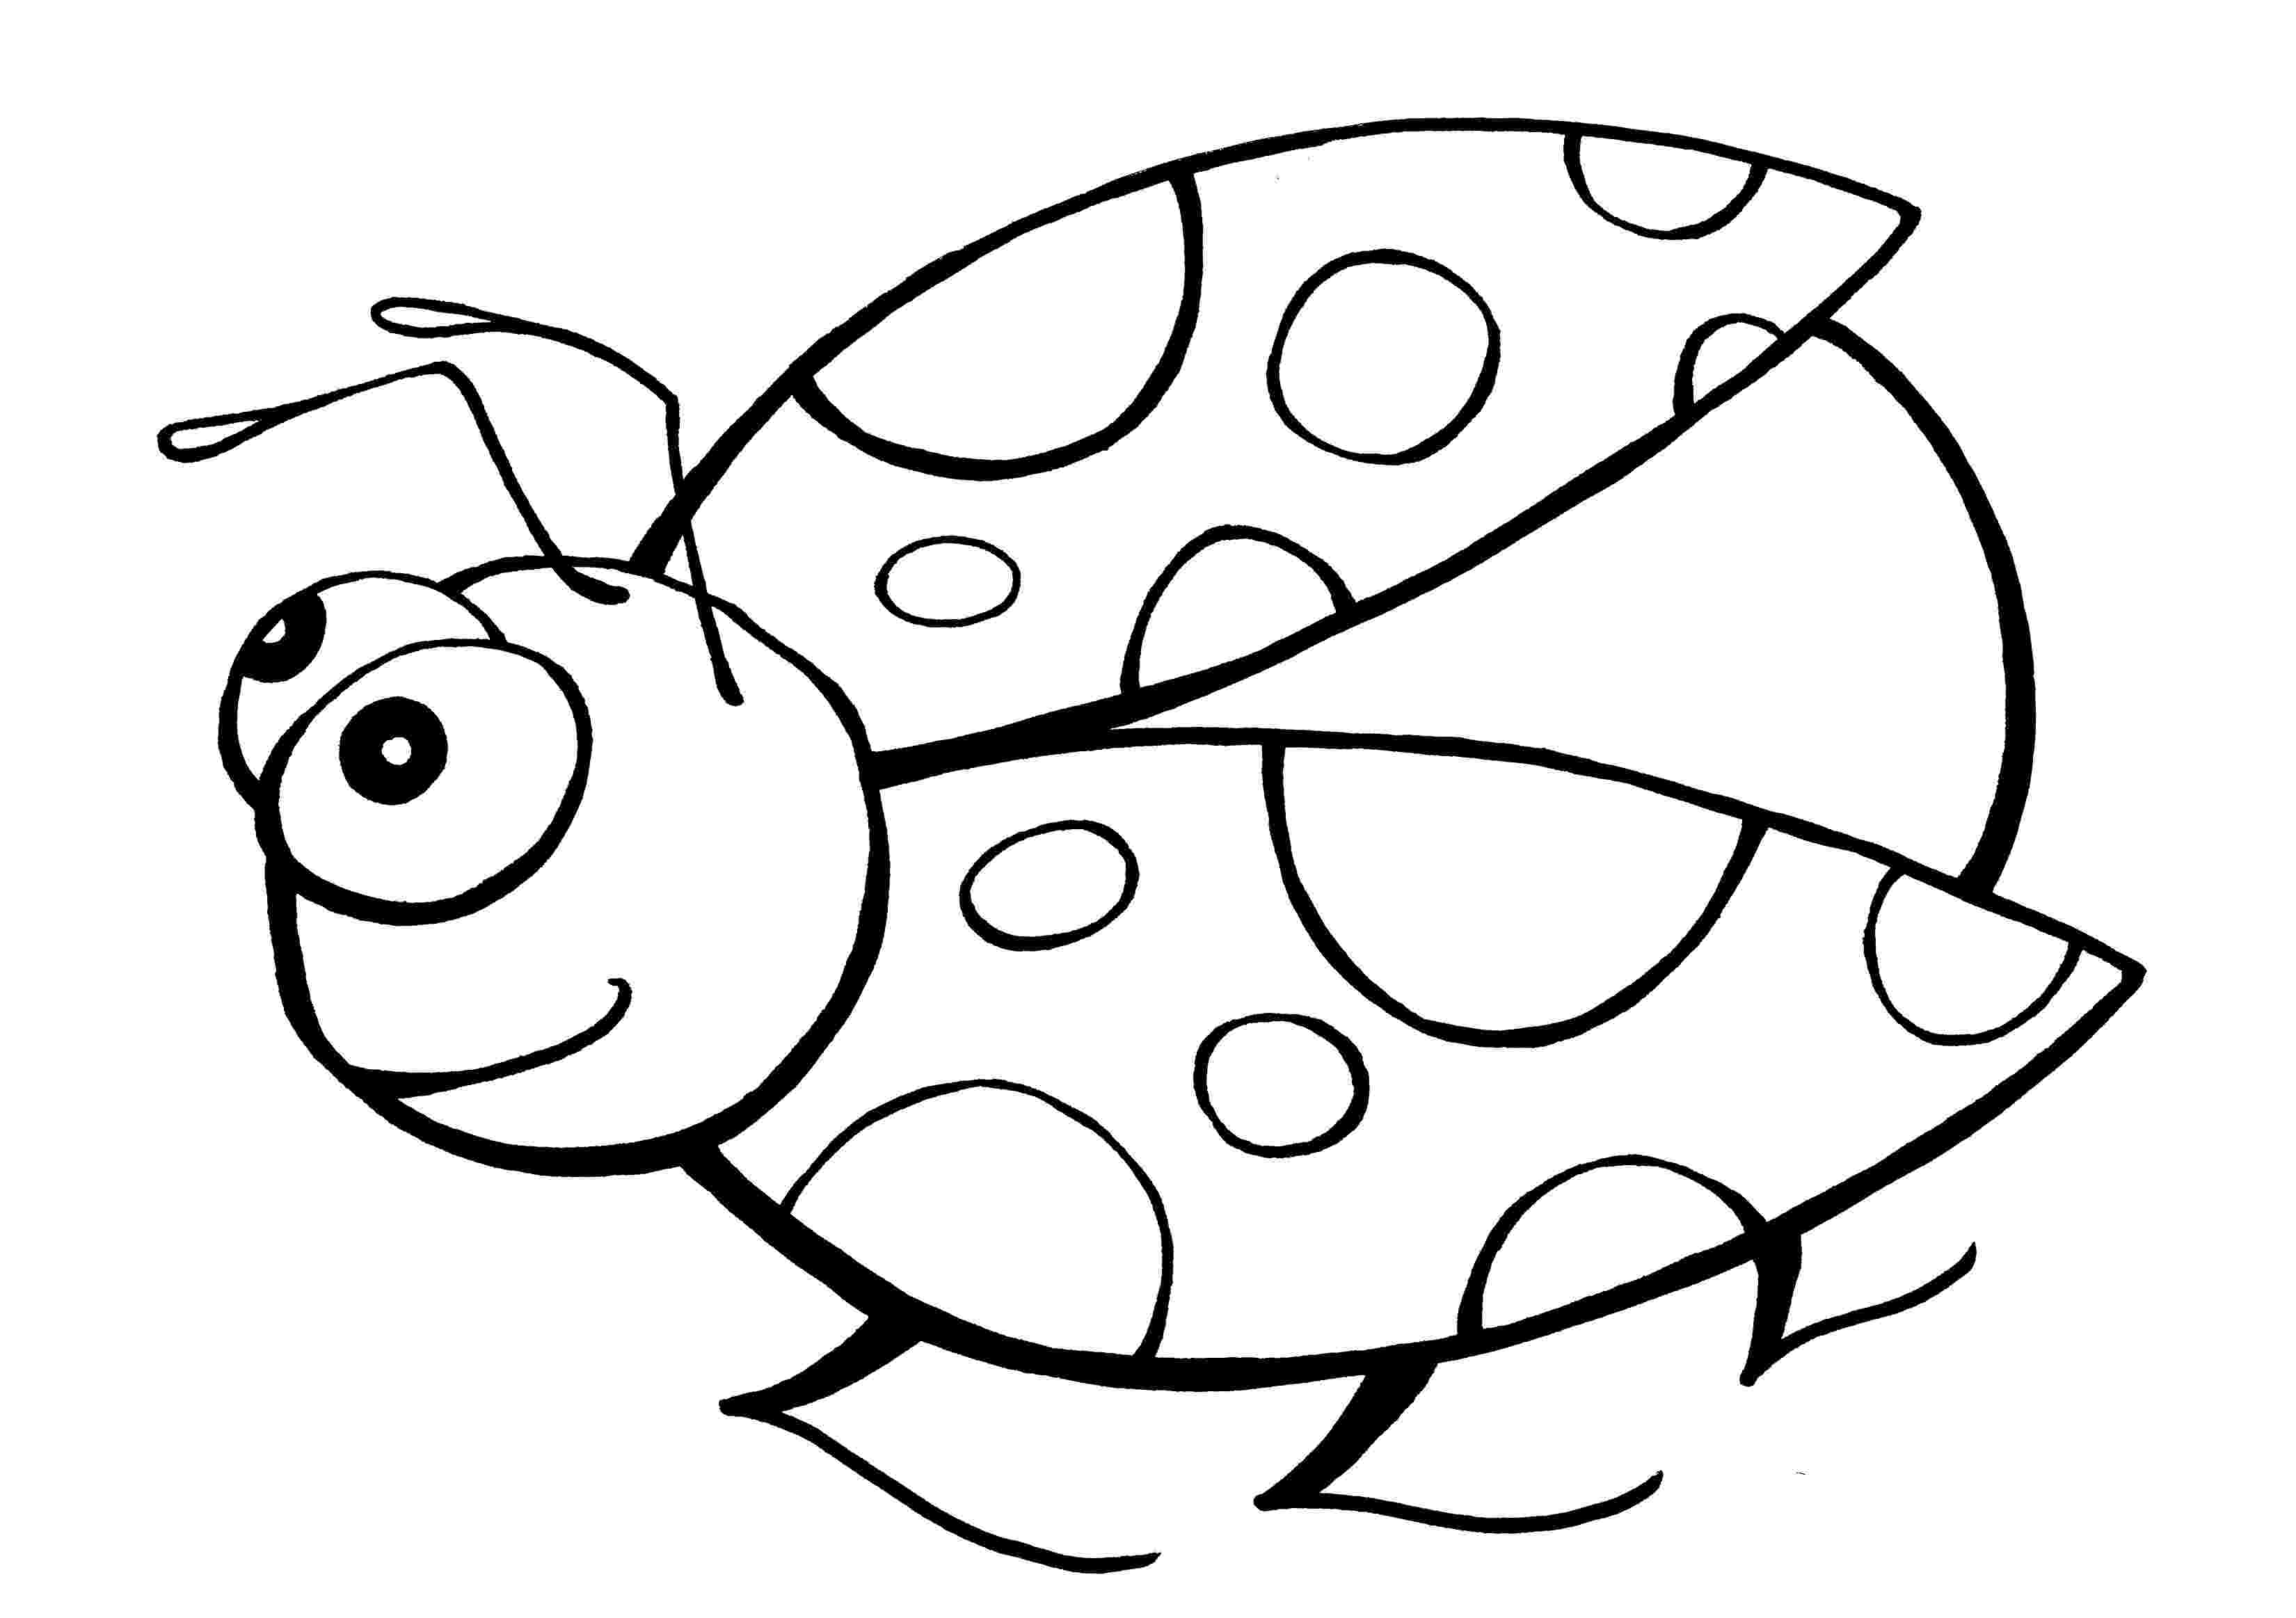 lady bug coloring page ladybug coloring pages to download and print for free bug coloring page lady